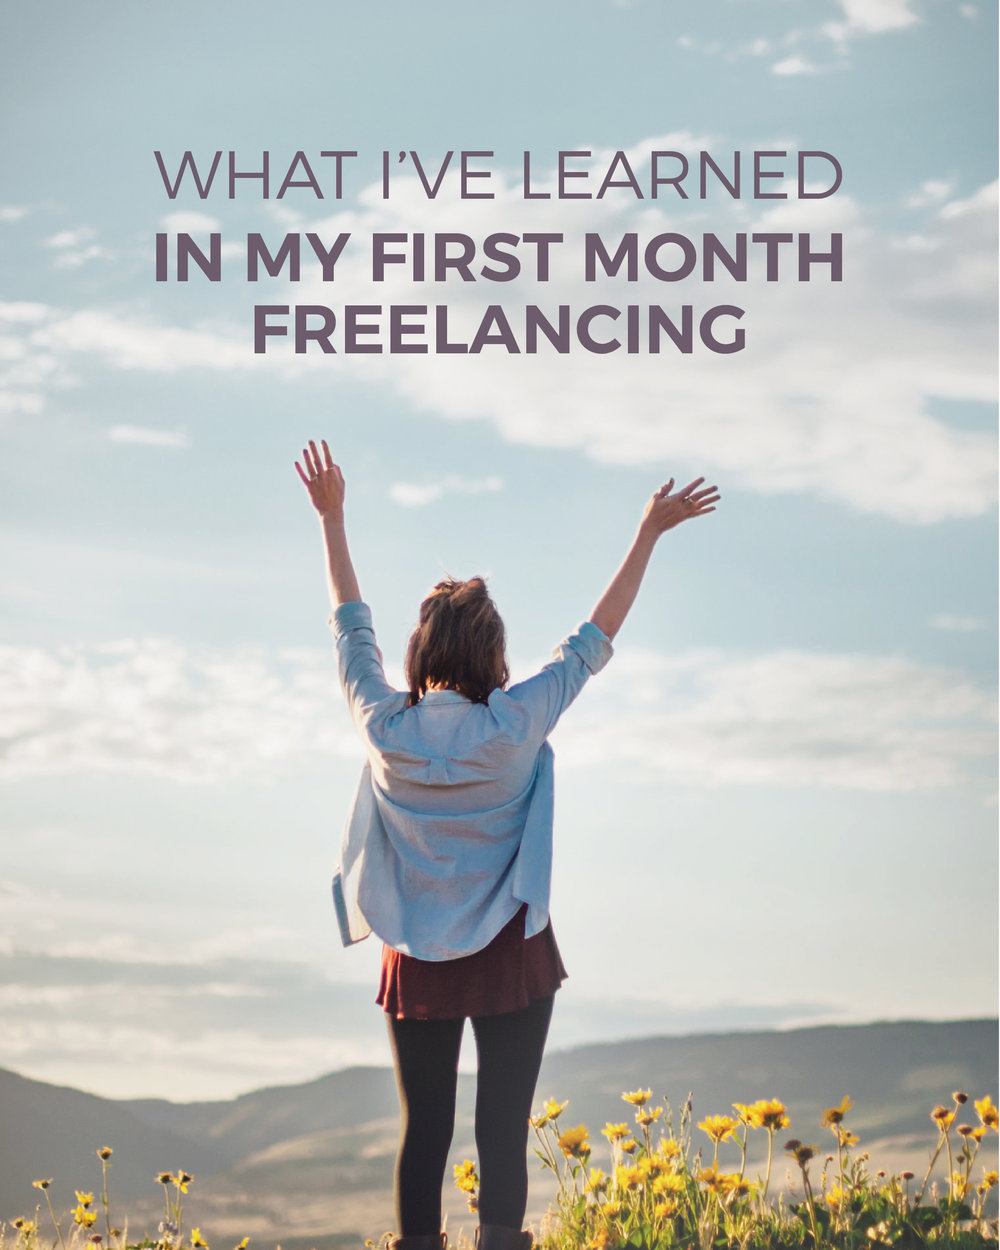 What-I-learned-in-my-first-month-freelancing.jpg